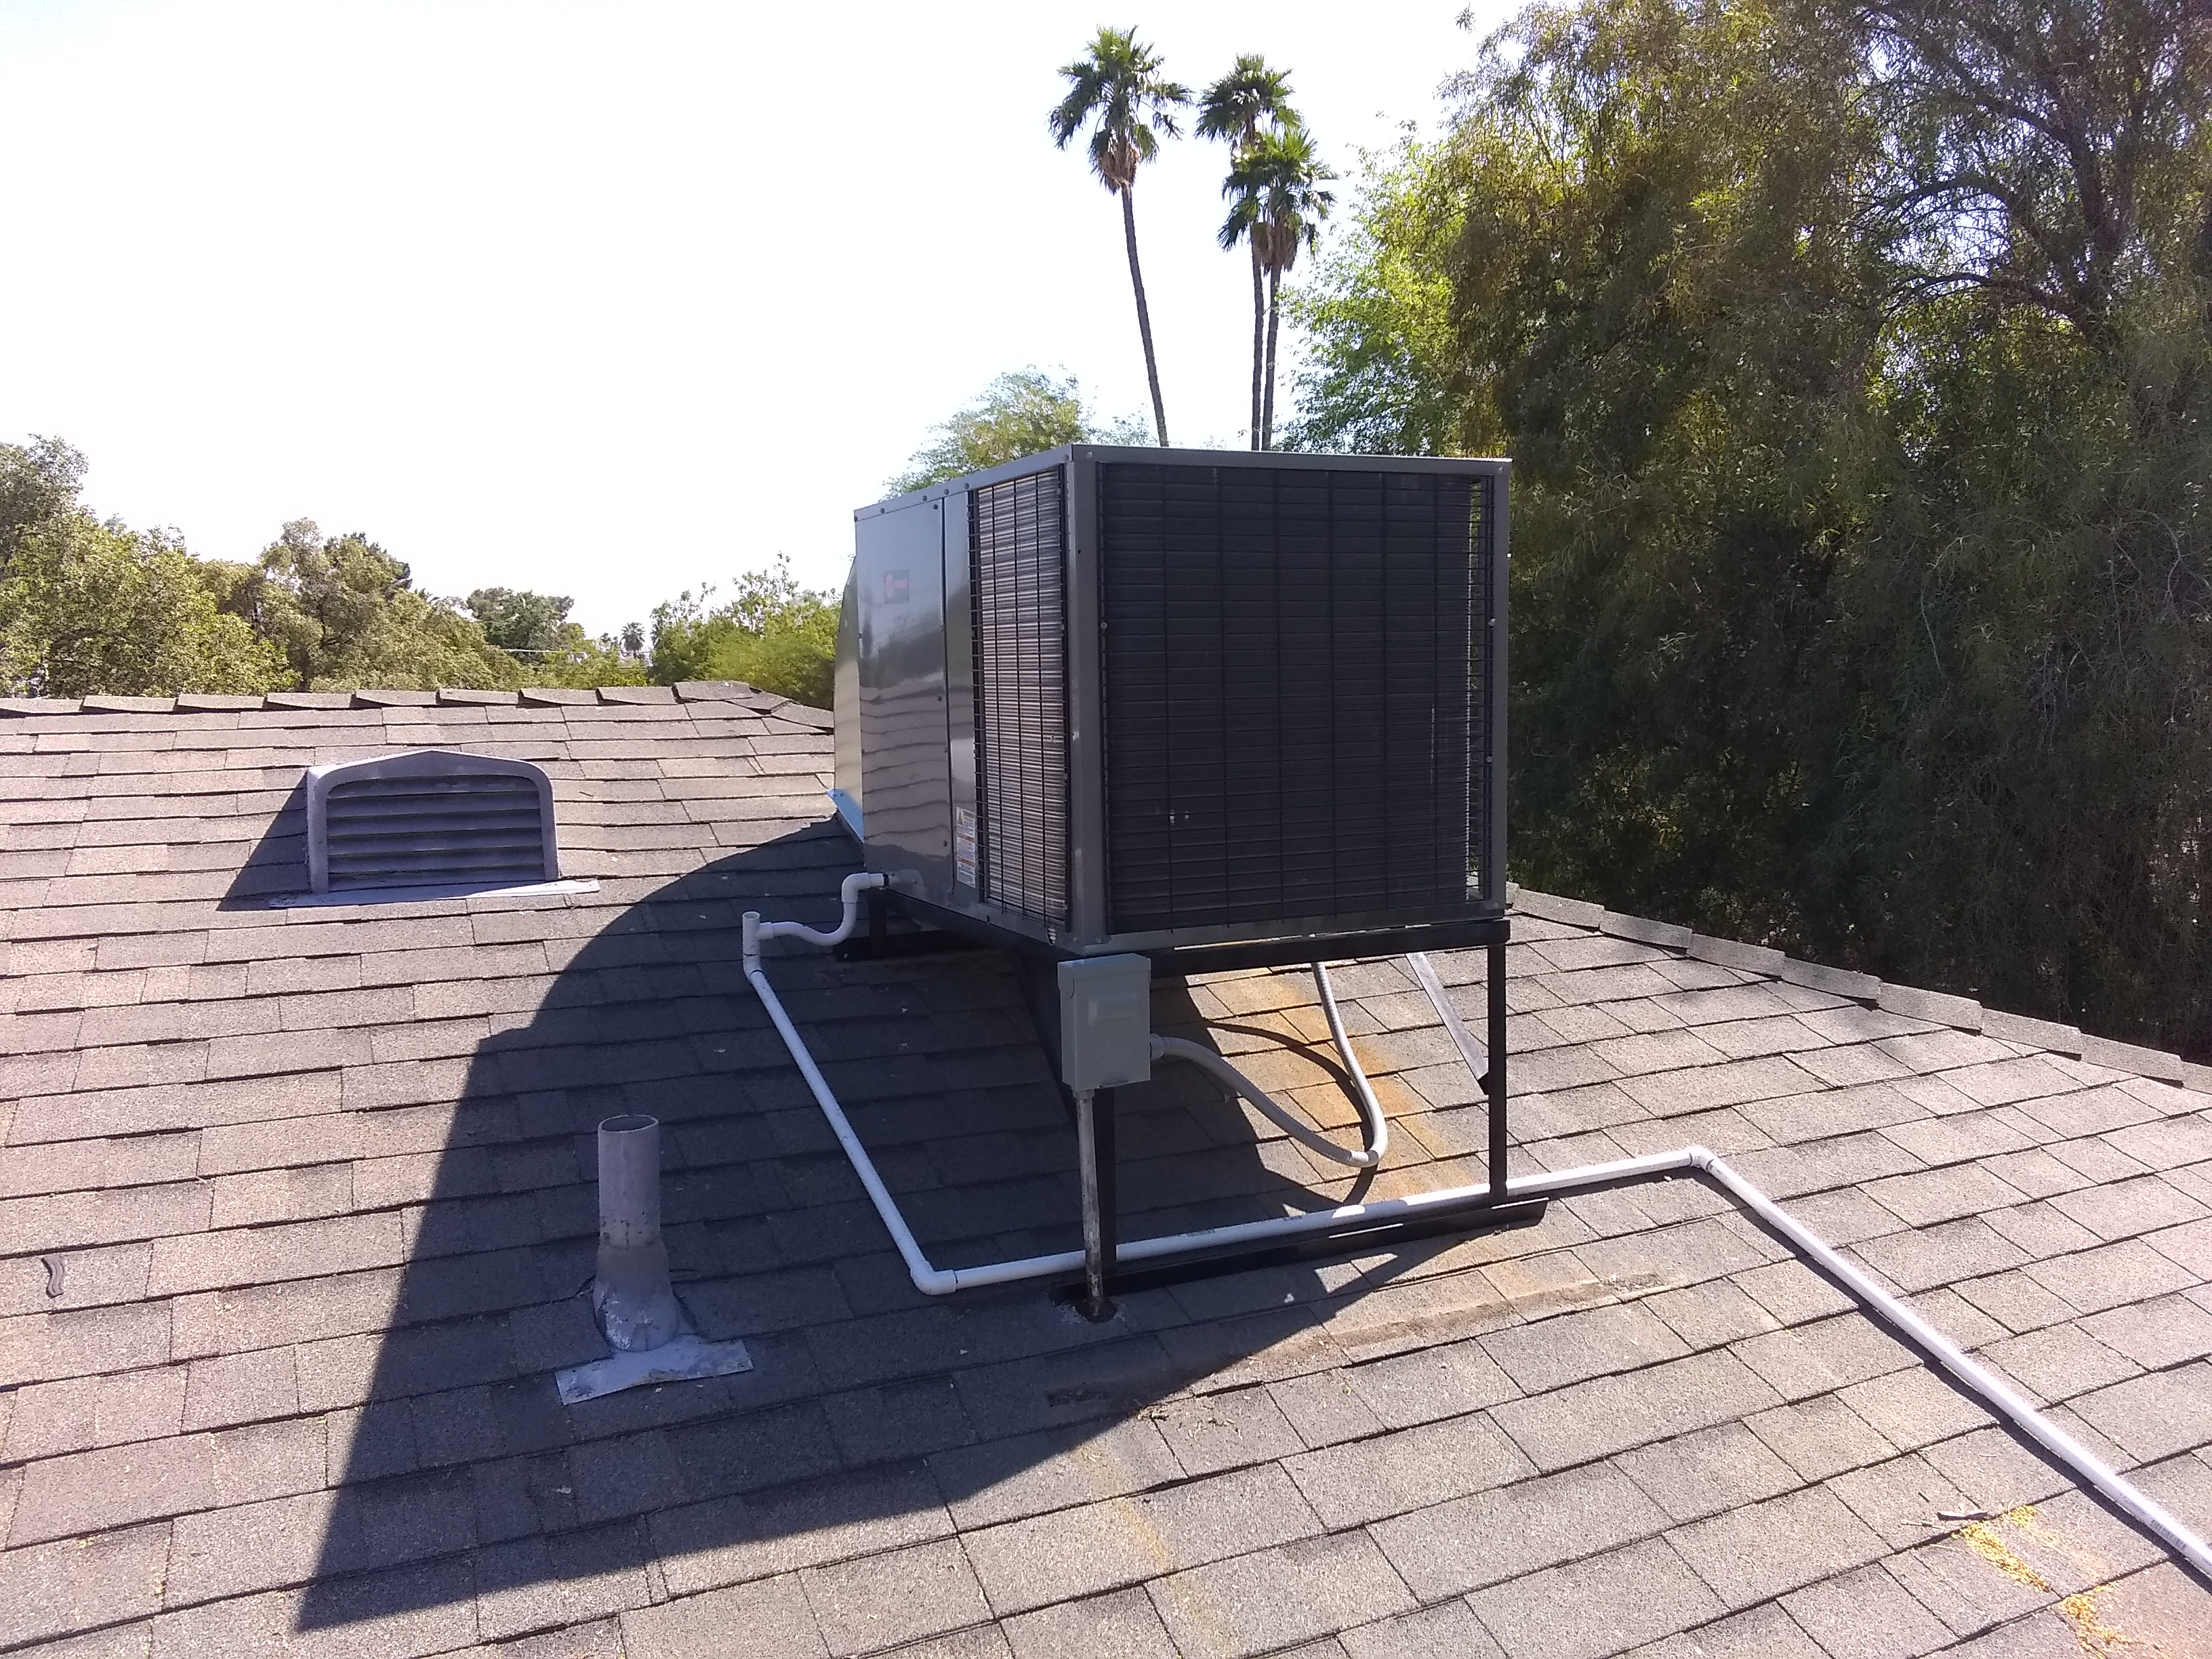 Over / under Trane unit is a great choice for replacing old Goettl units